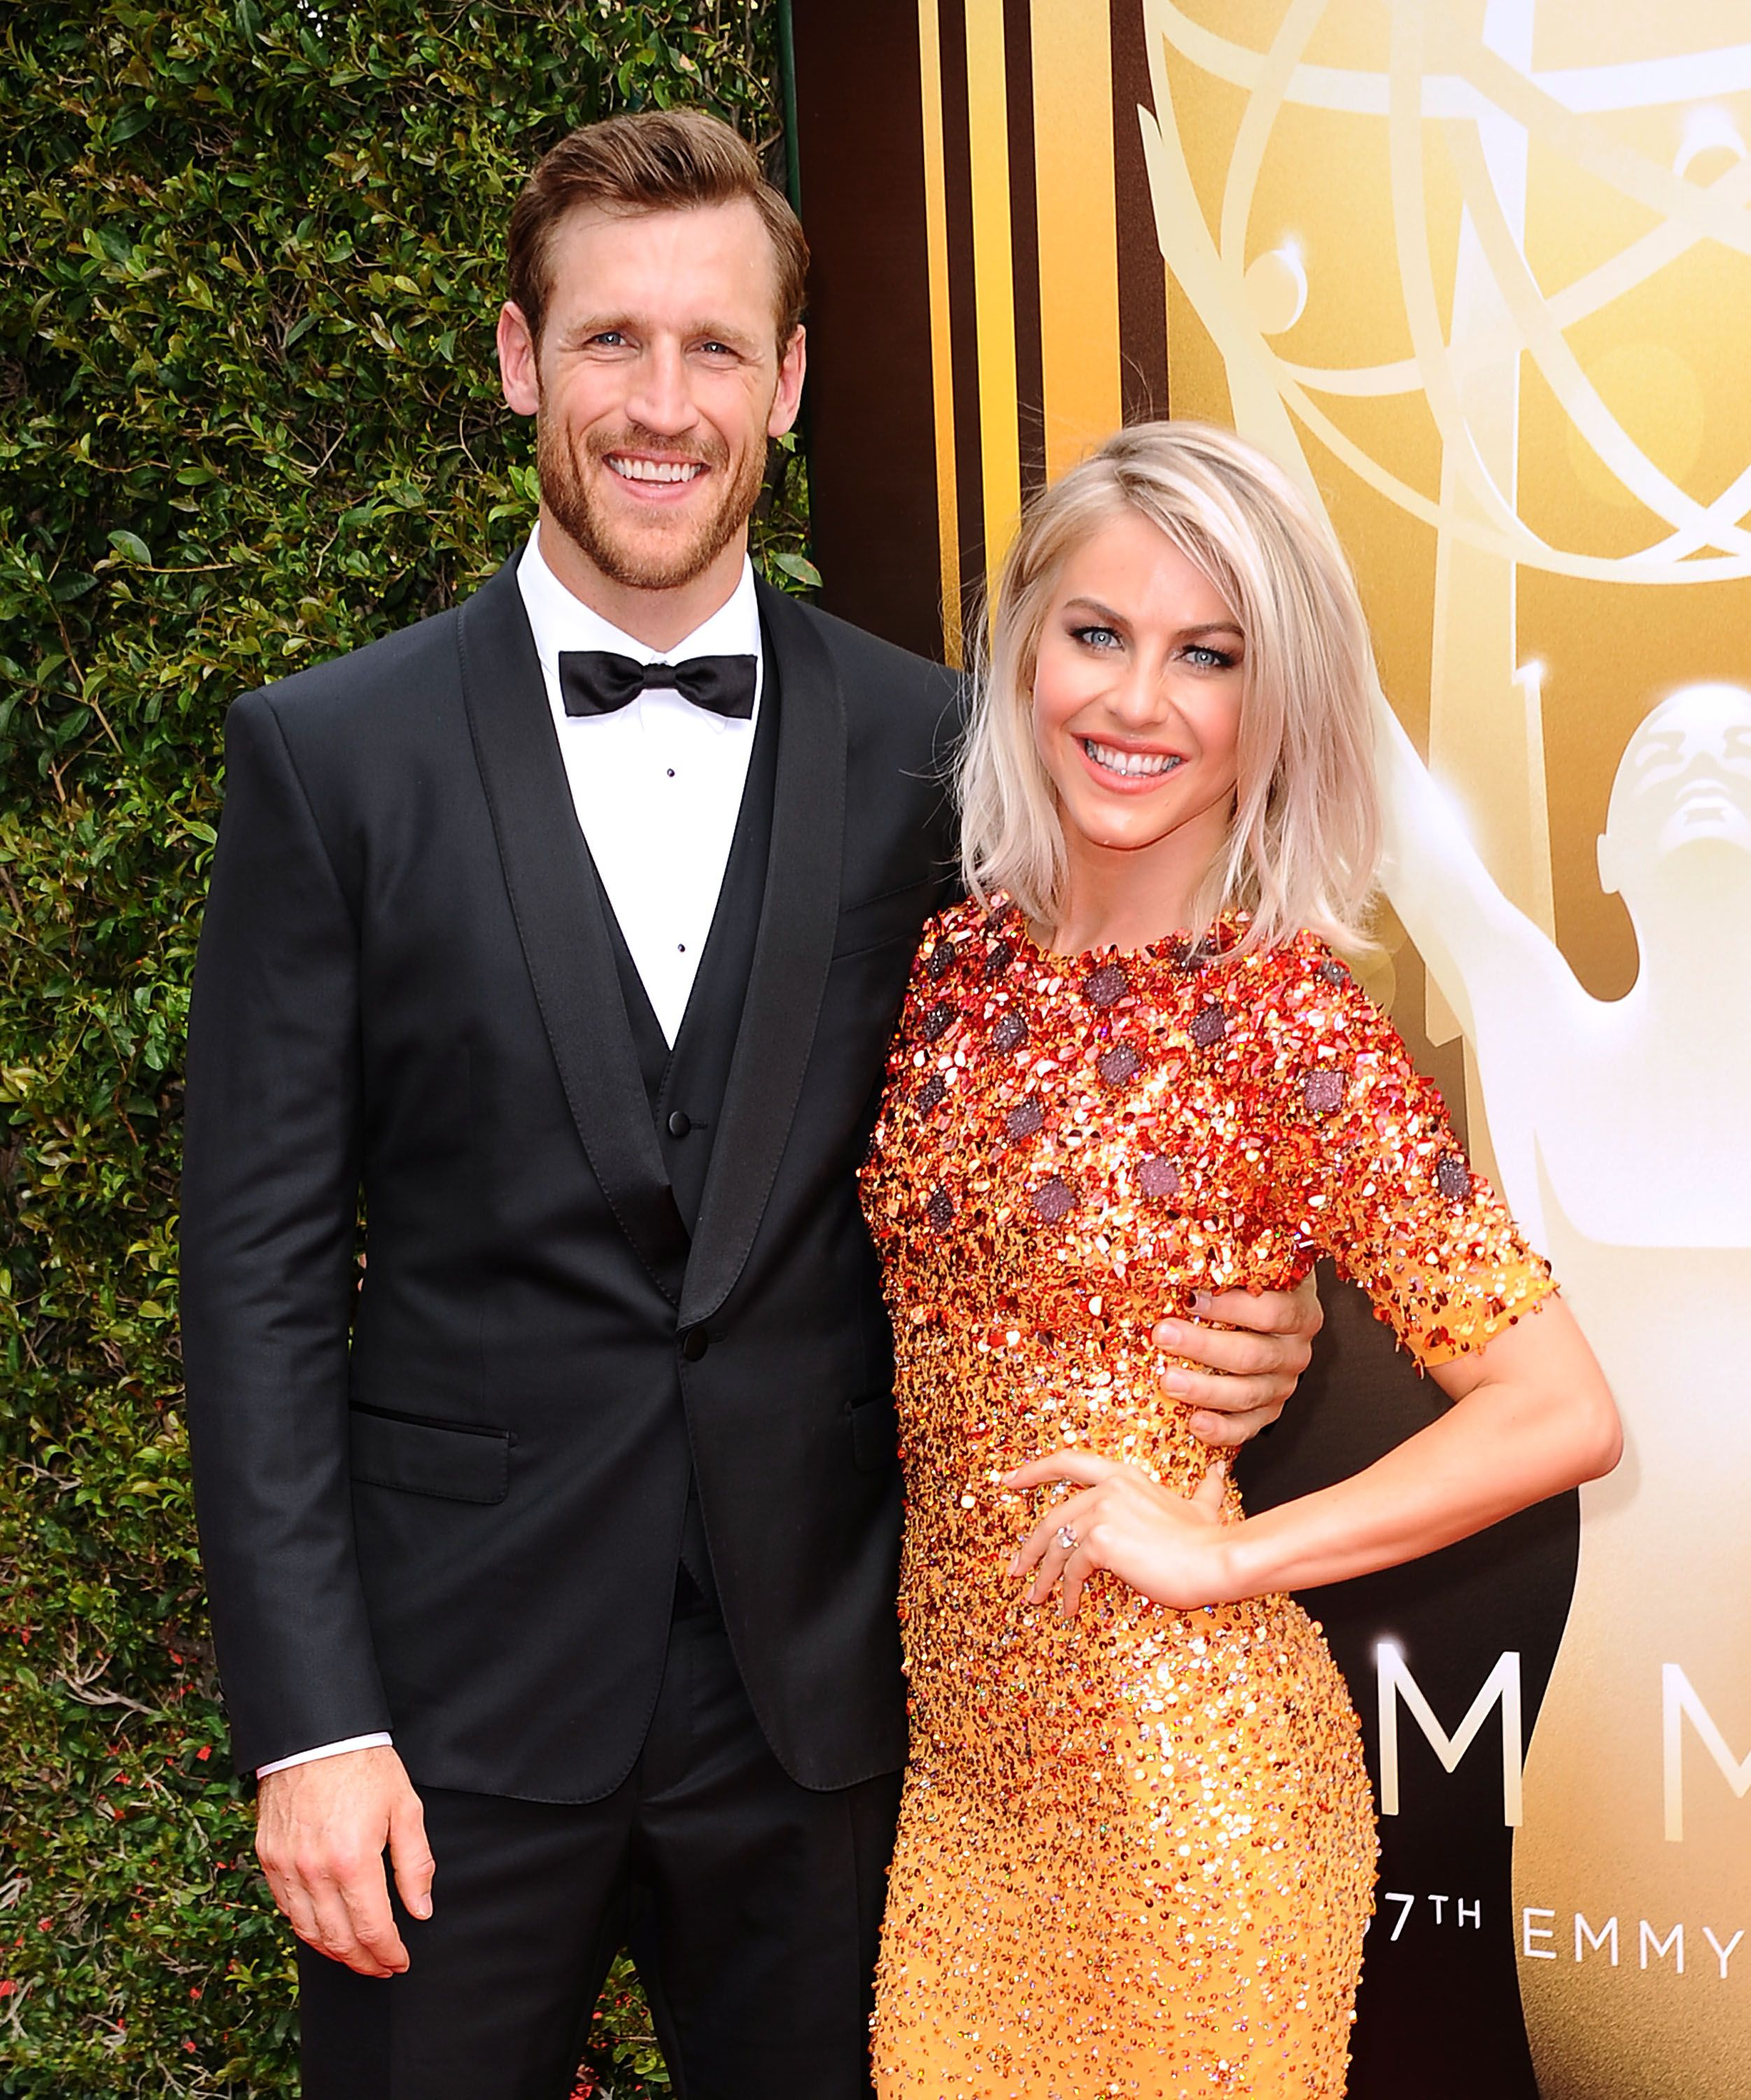 Brooks Laich and Julianne Hough at the 2015 Creative Arts Emmy Awards at Microsoft Theater on September 12, 2015 in Los Angeles, California | Photo: Getty Images